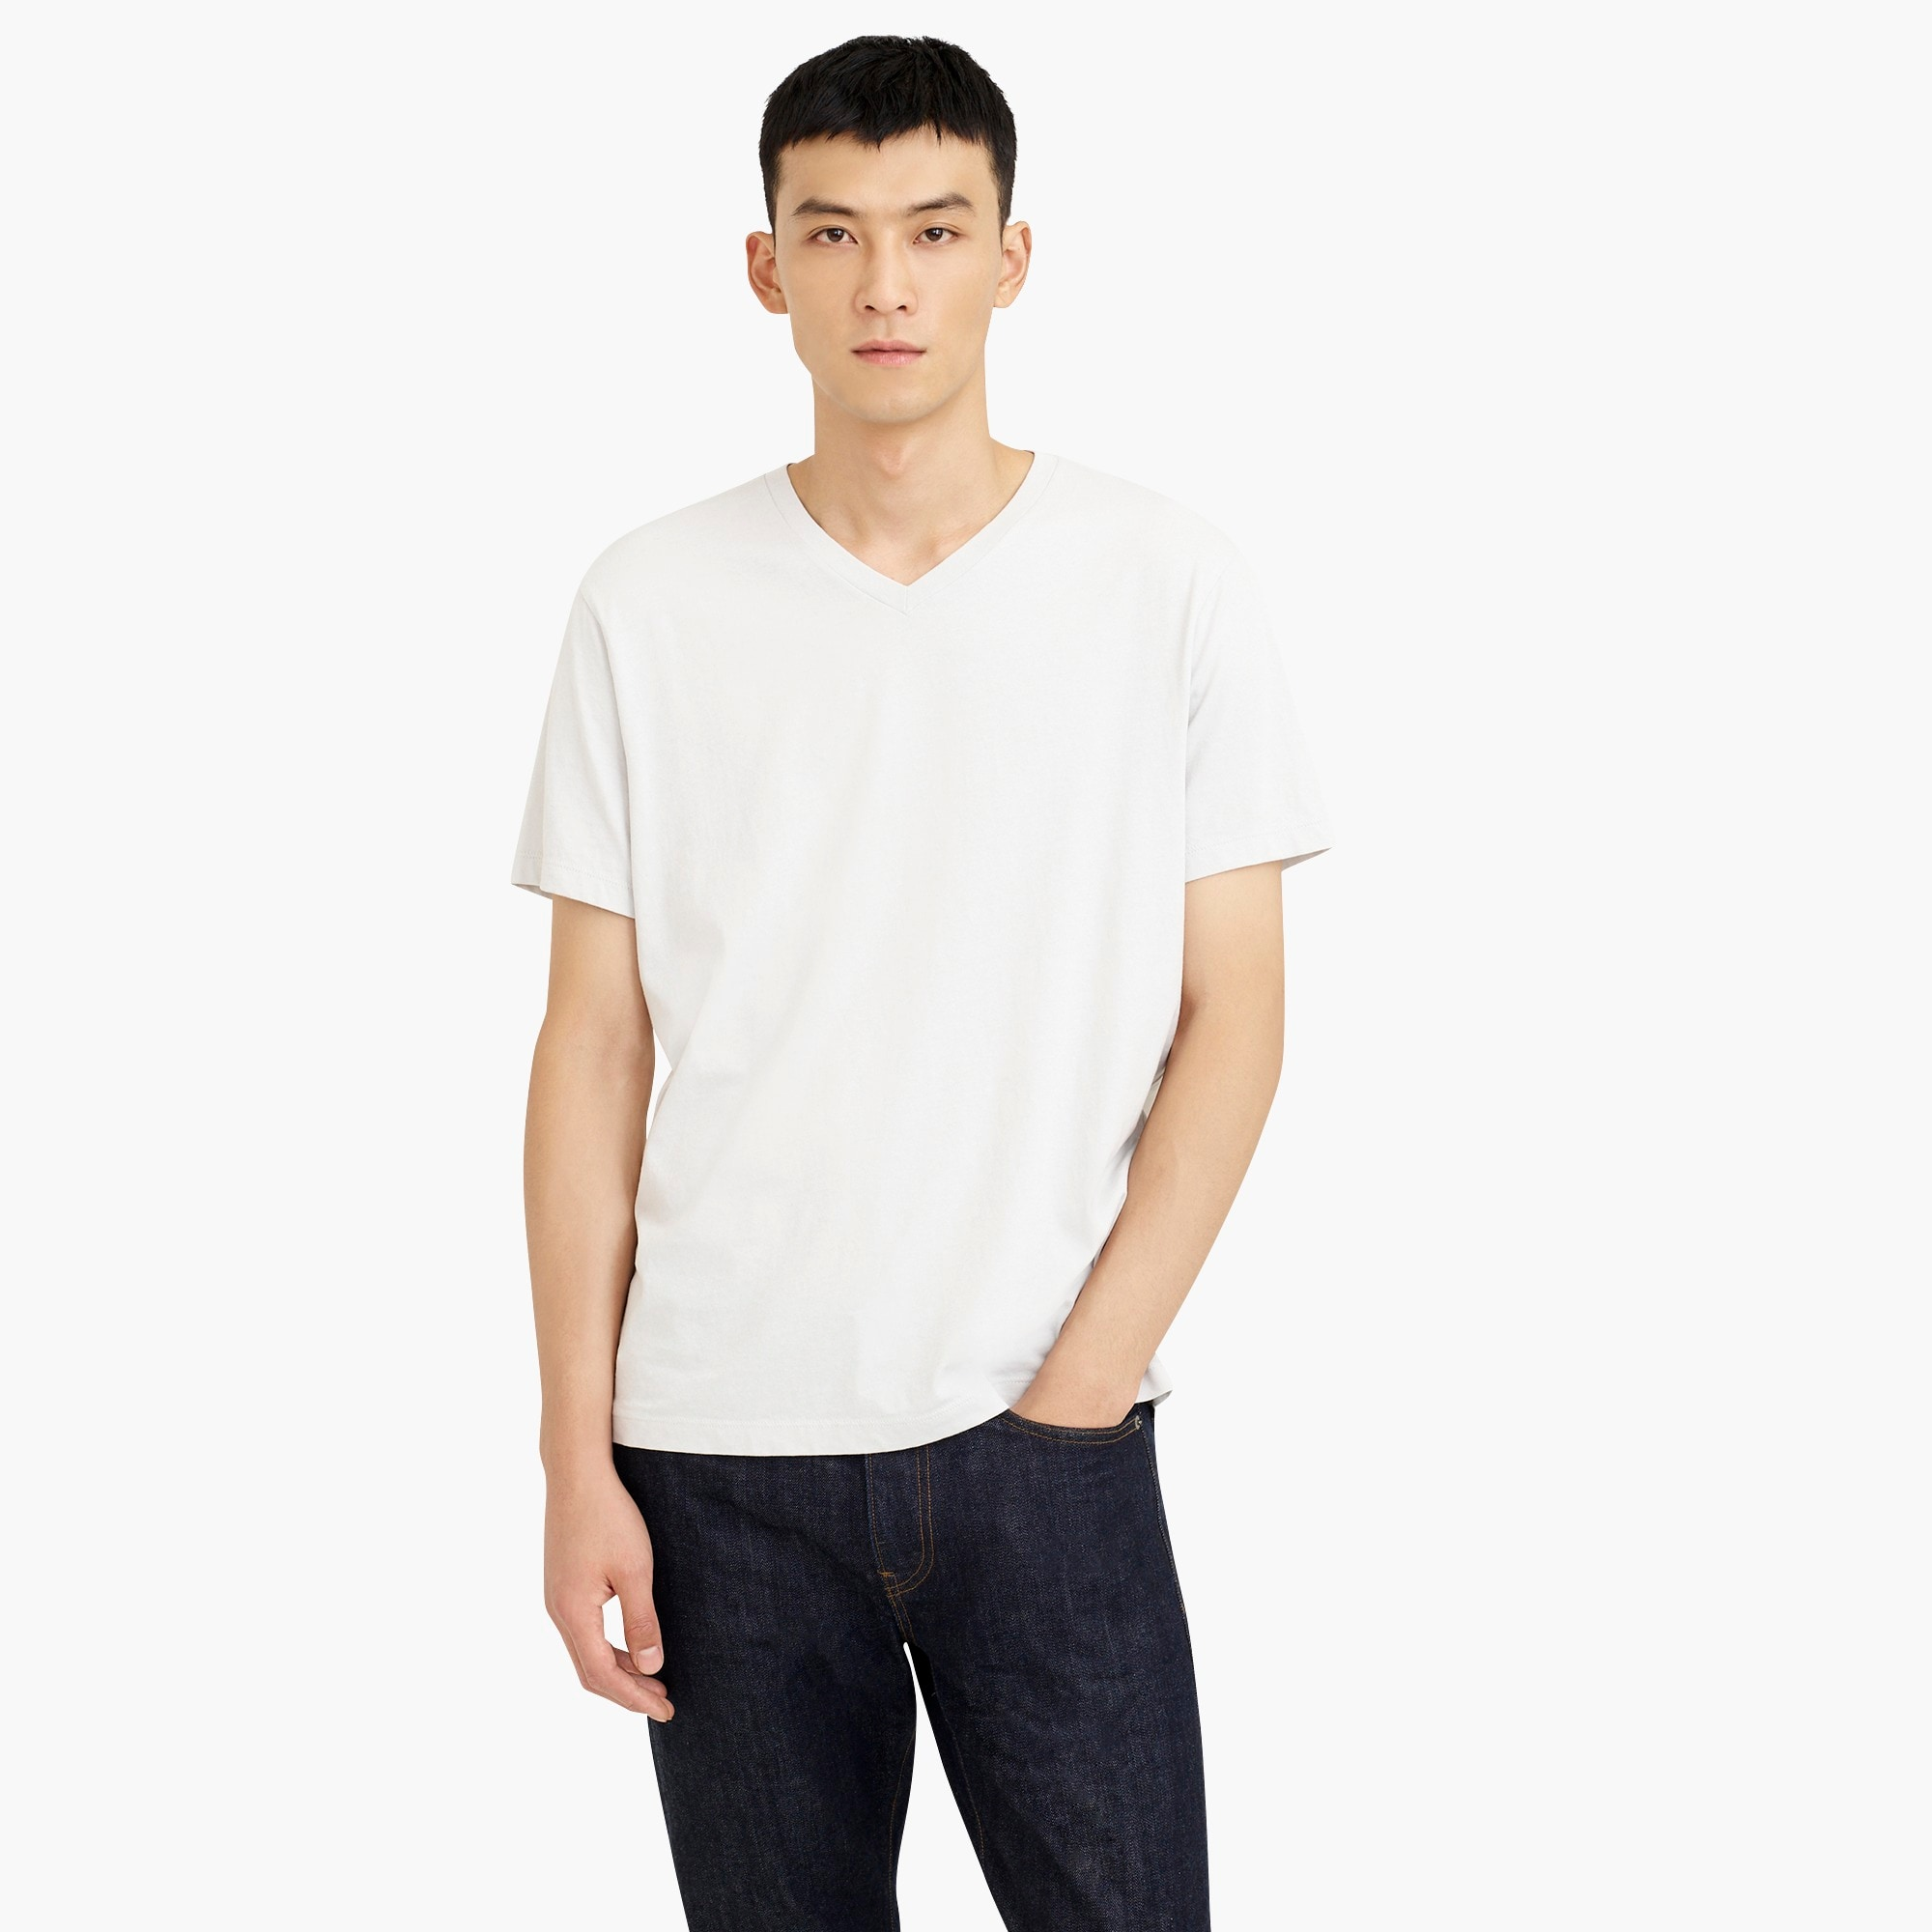 Image 1 for J.Crew Mercantile Broken-in V-neck T-shirt